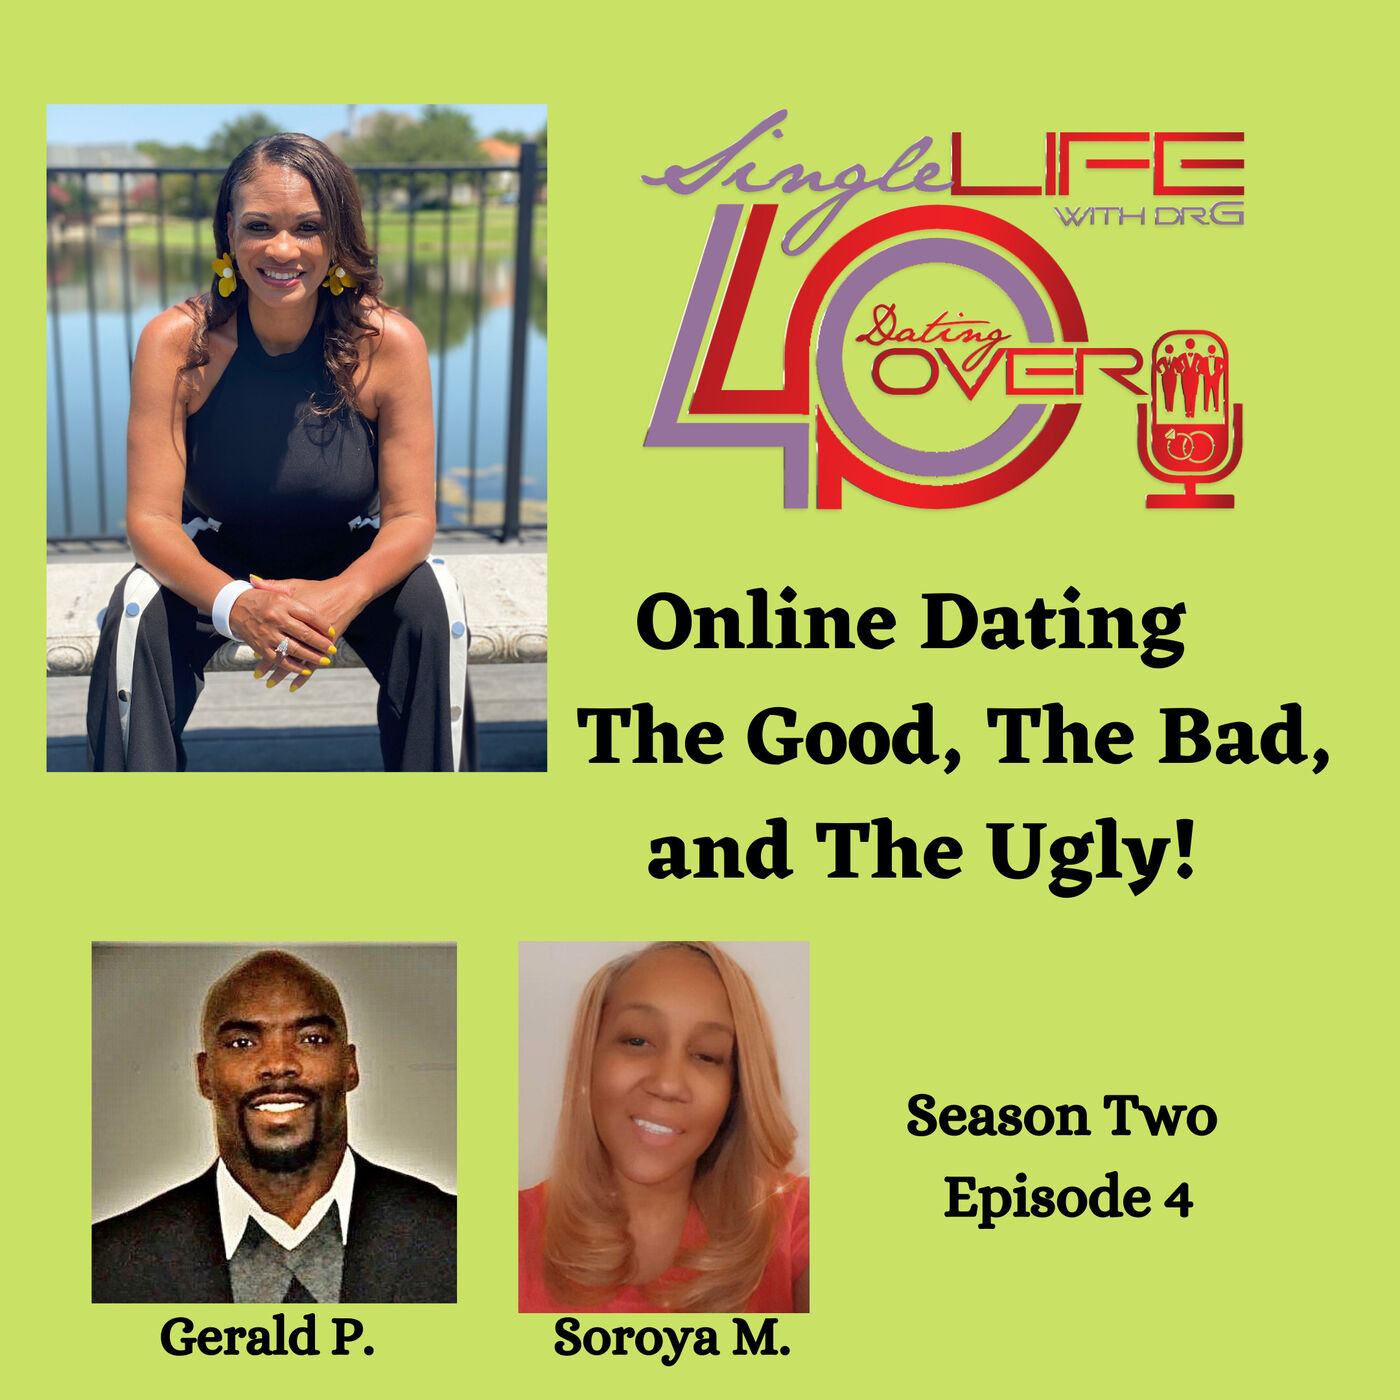 Online Dating - The Good, The Bad, and the Ugly